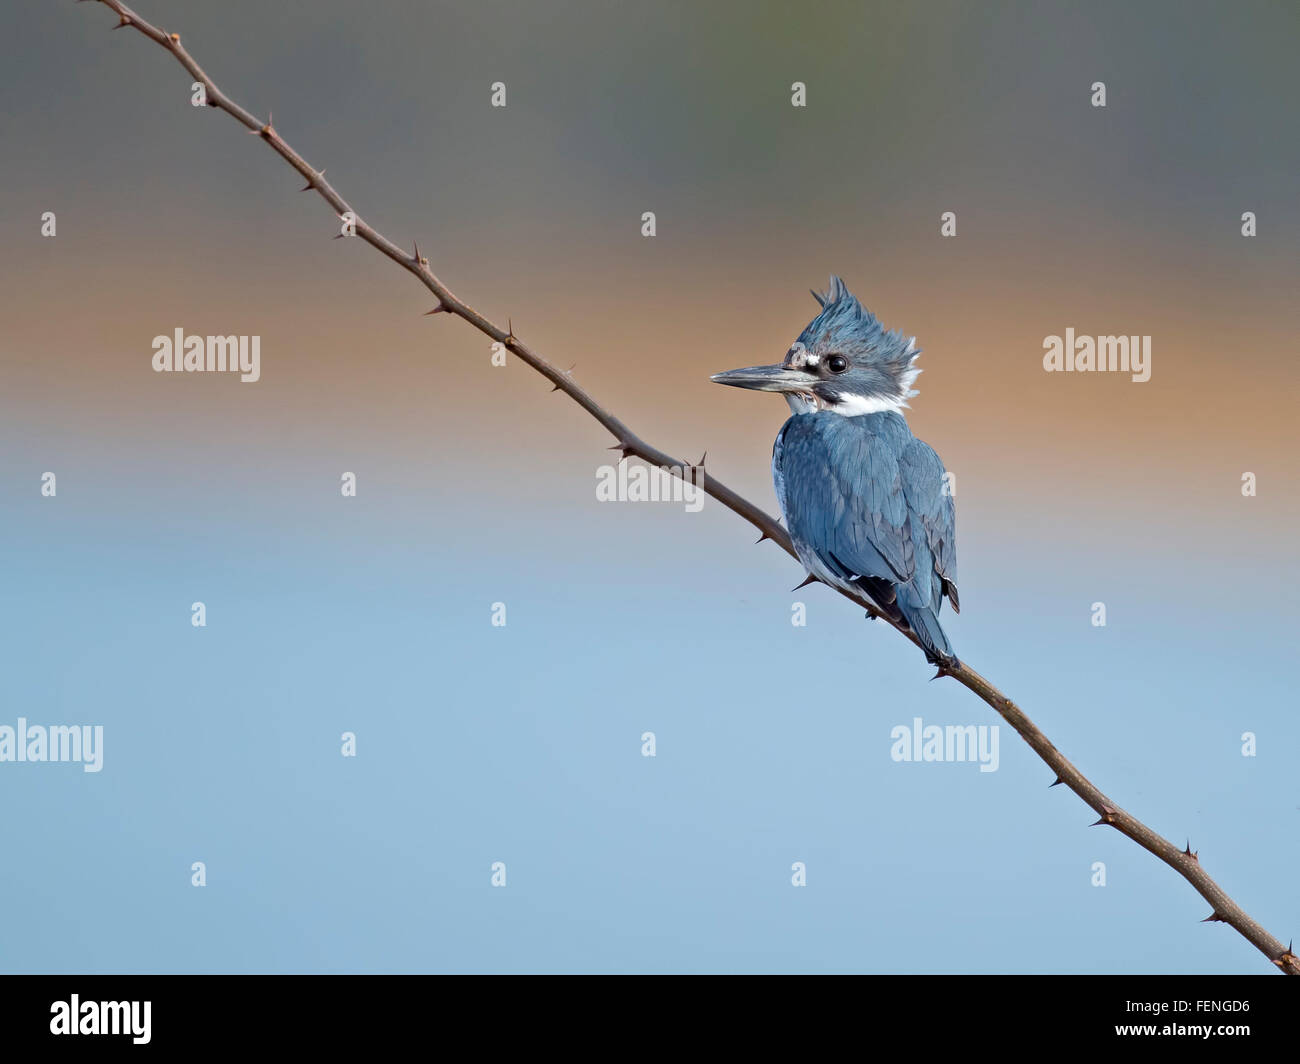 Male Belted Kingfisher - Stock Image